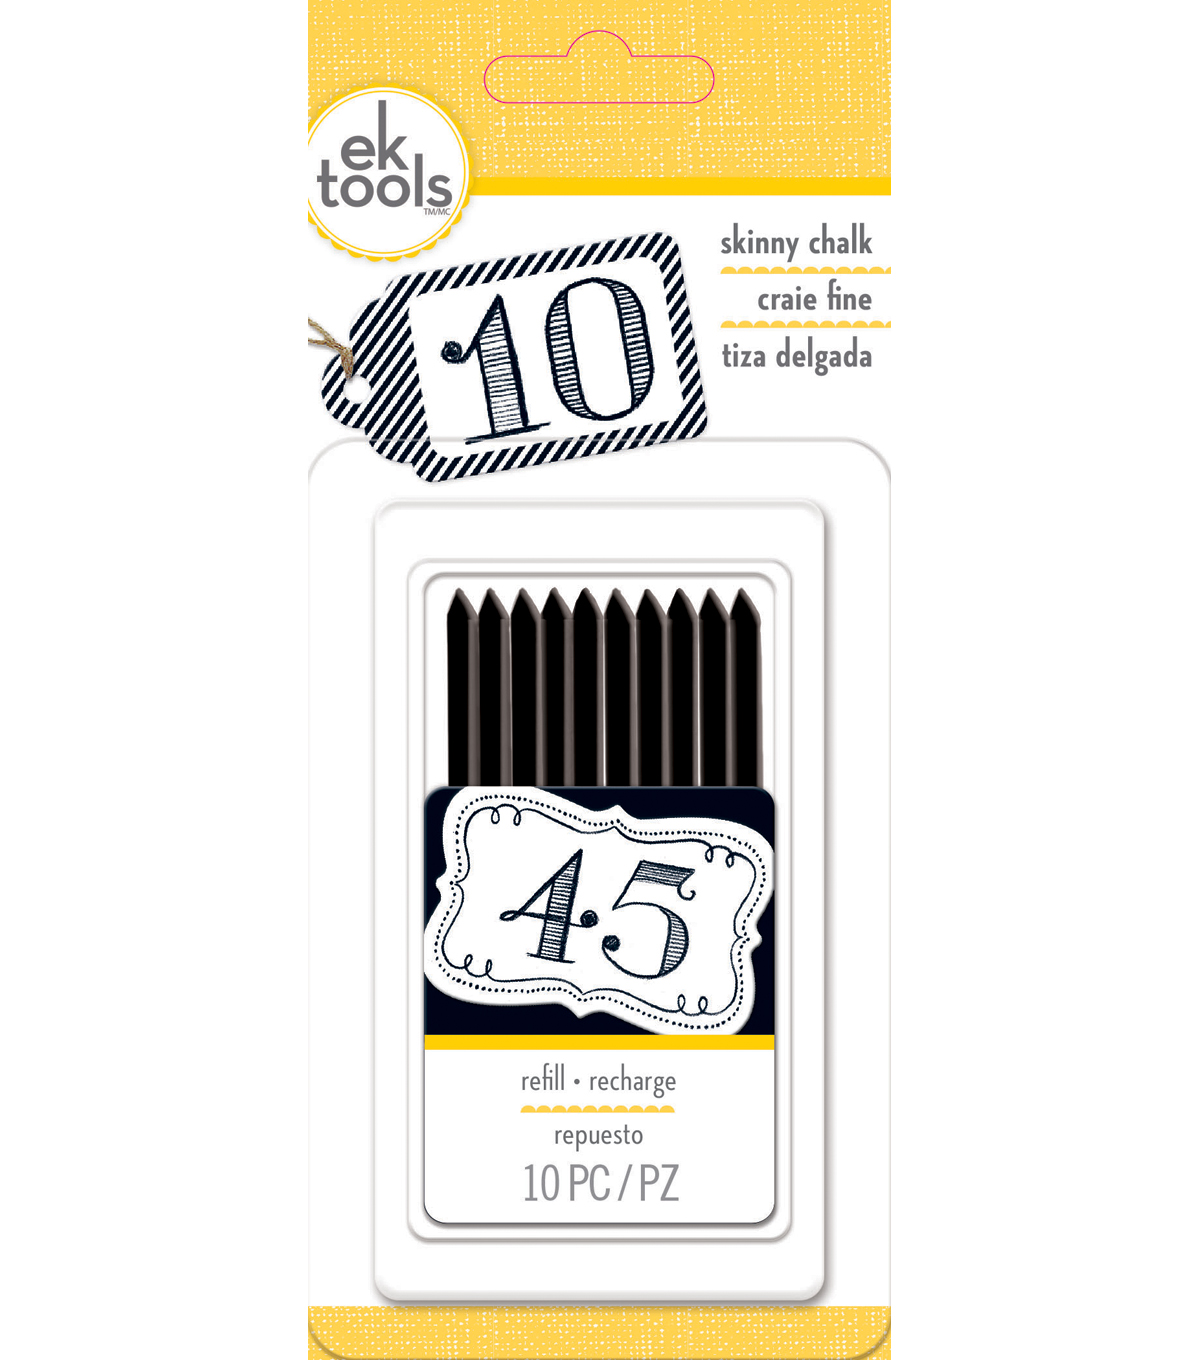 Ek Tools - Skinny Chalk Refill - Black